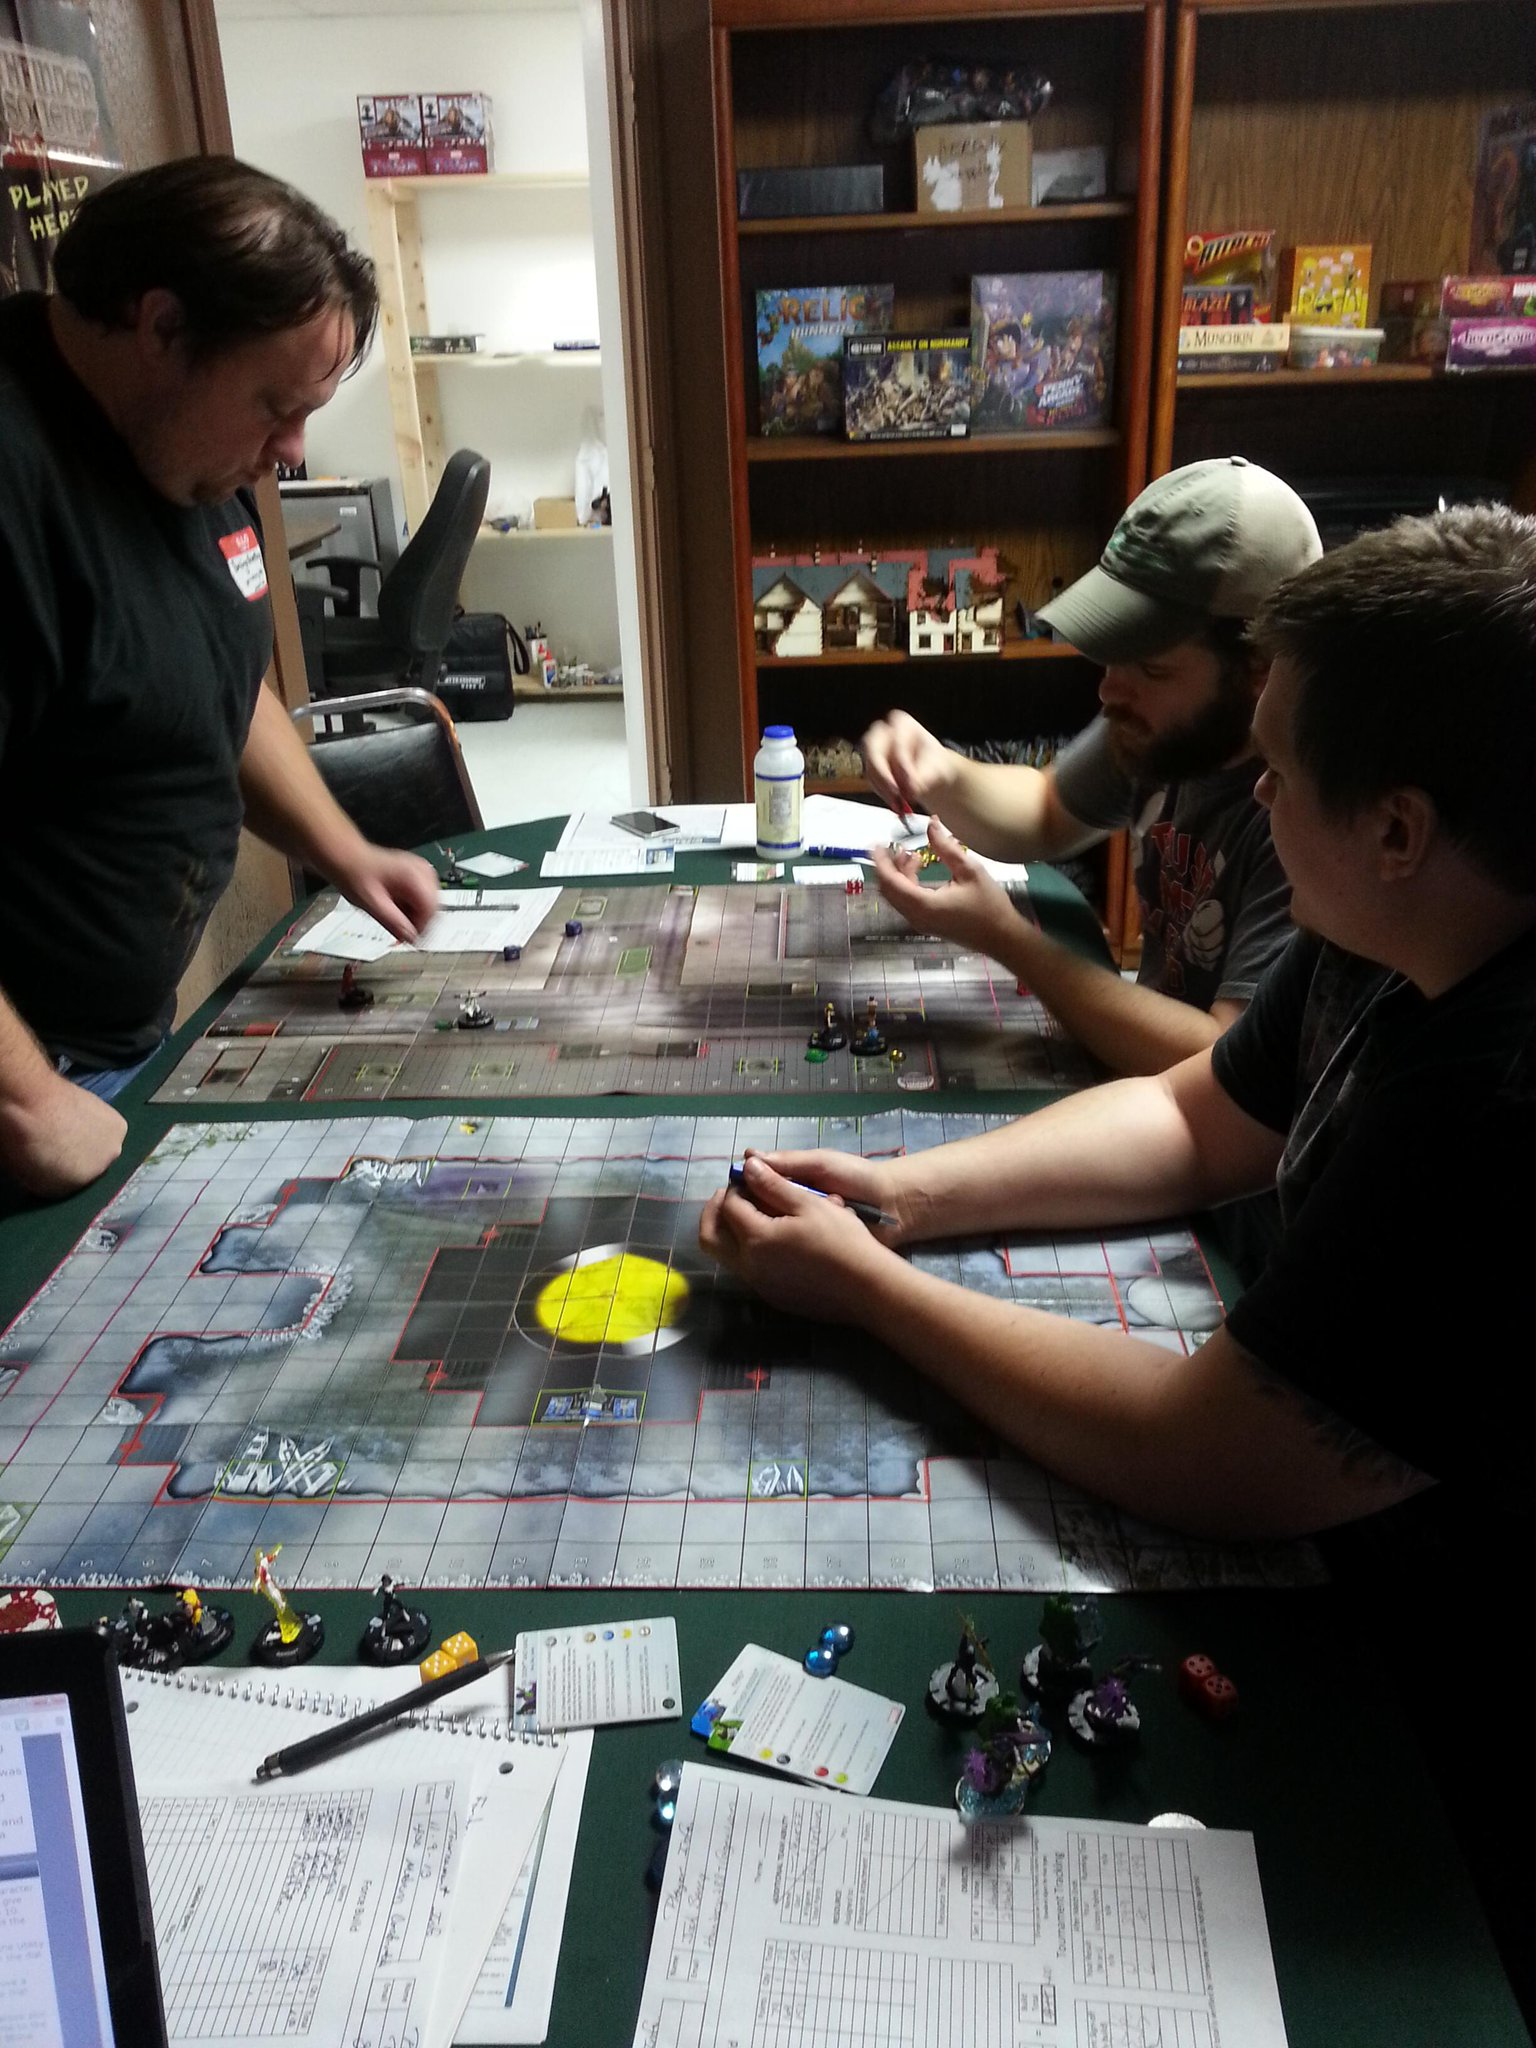 Dustin and Rush in heavy clix action today at the shop!  Dustin's Fantomex - Shatterstar combo dominated! http://t.co/piUumdQAbQ